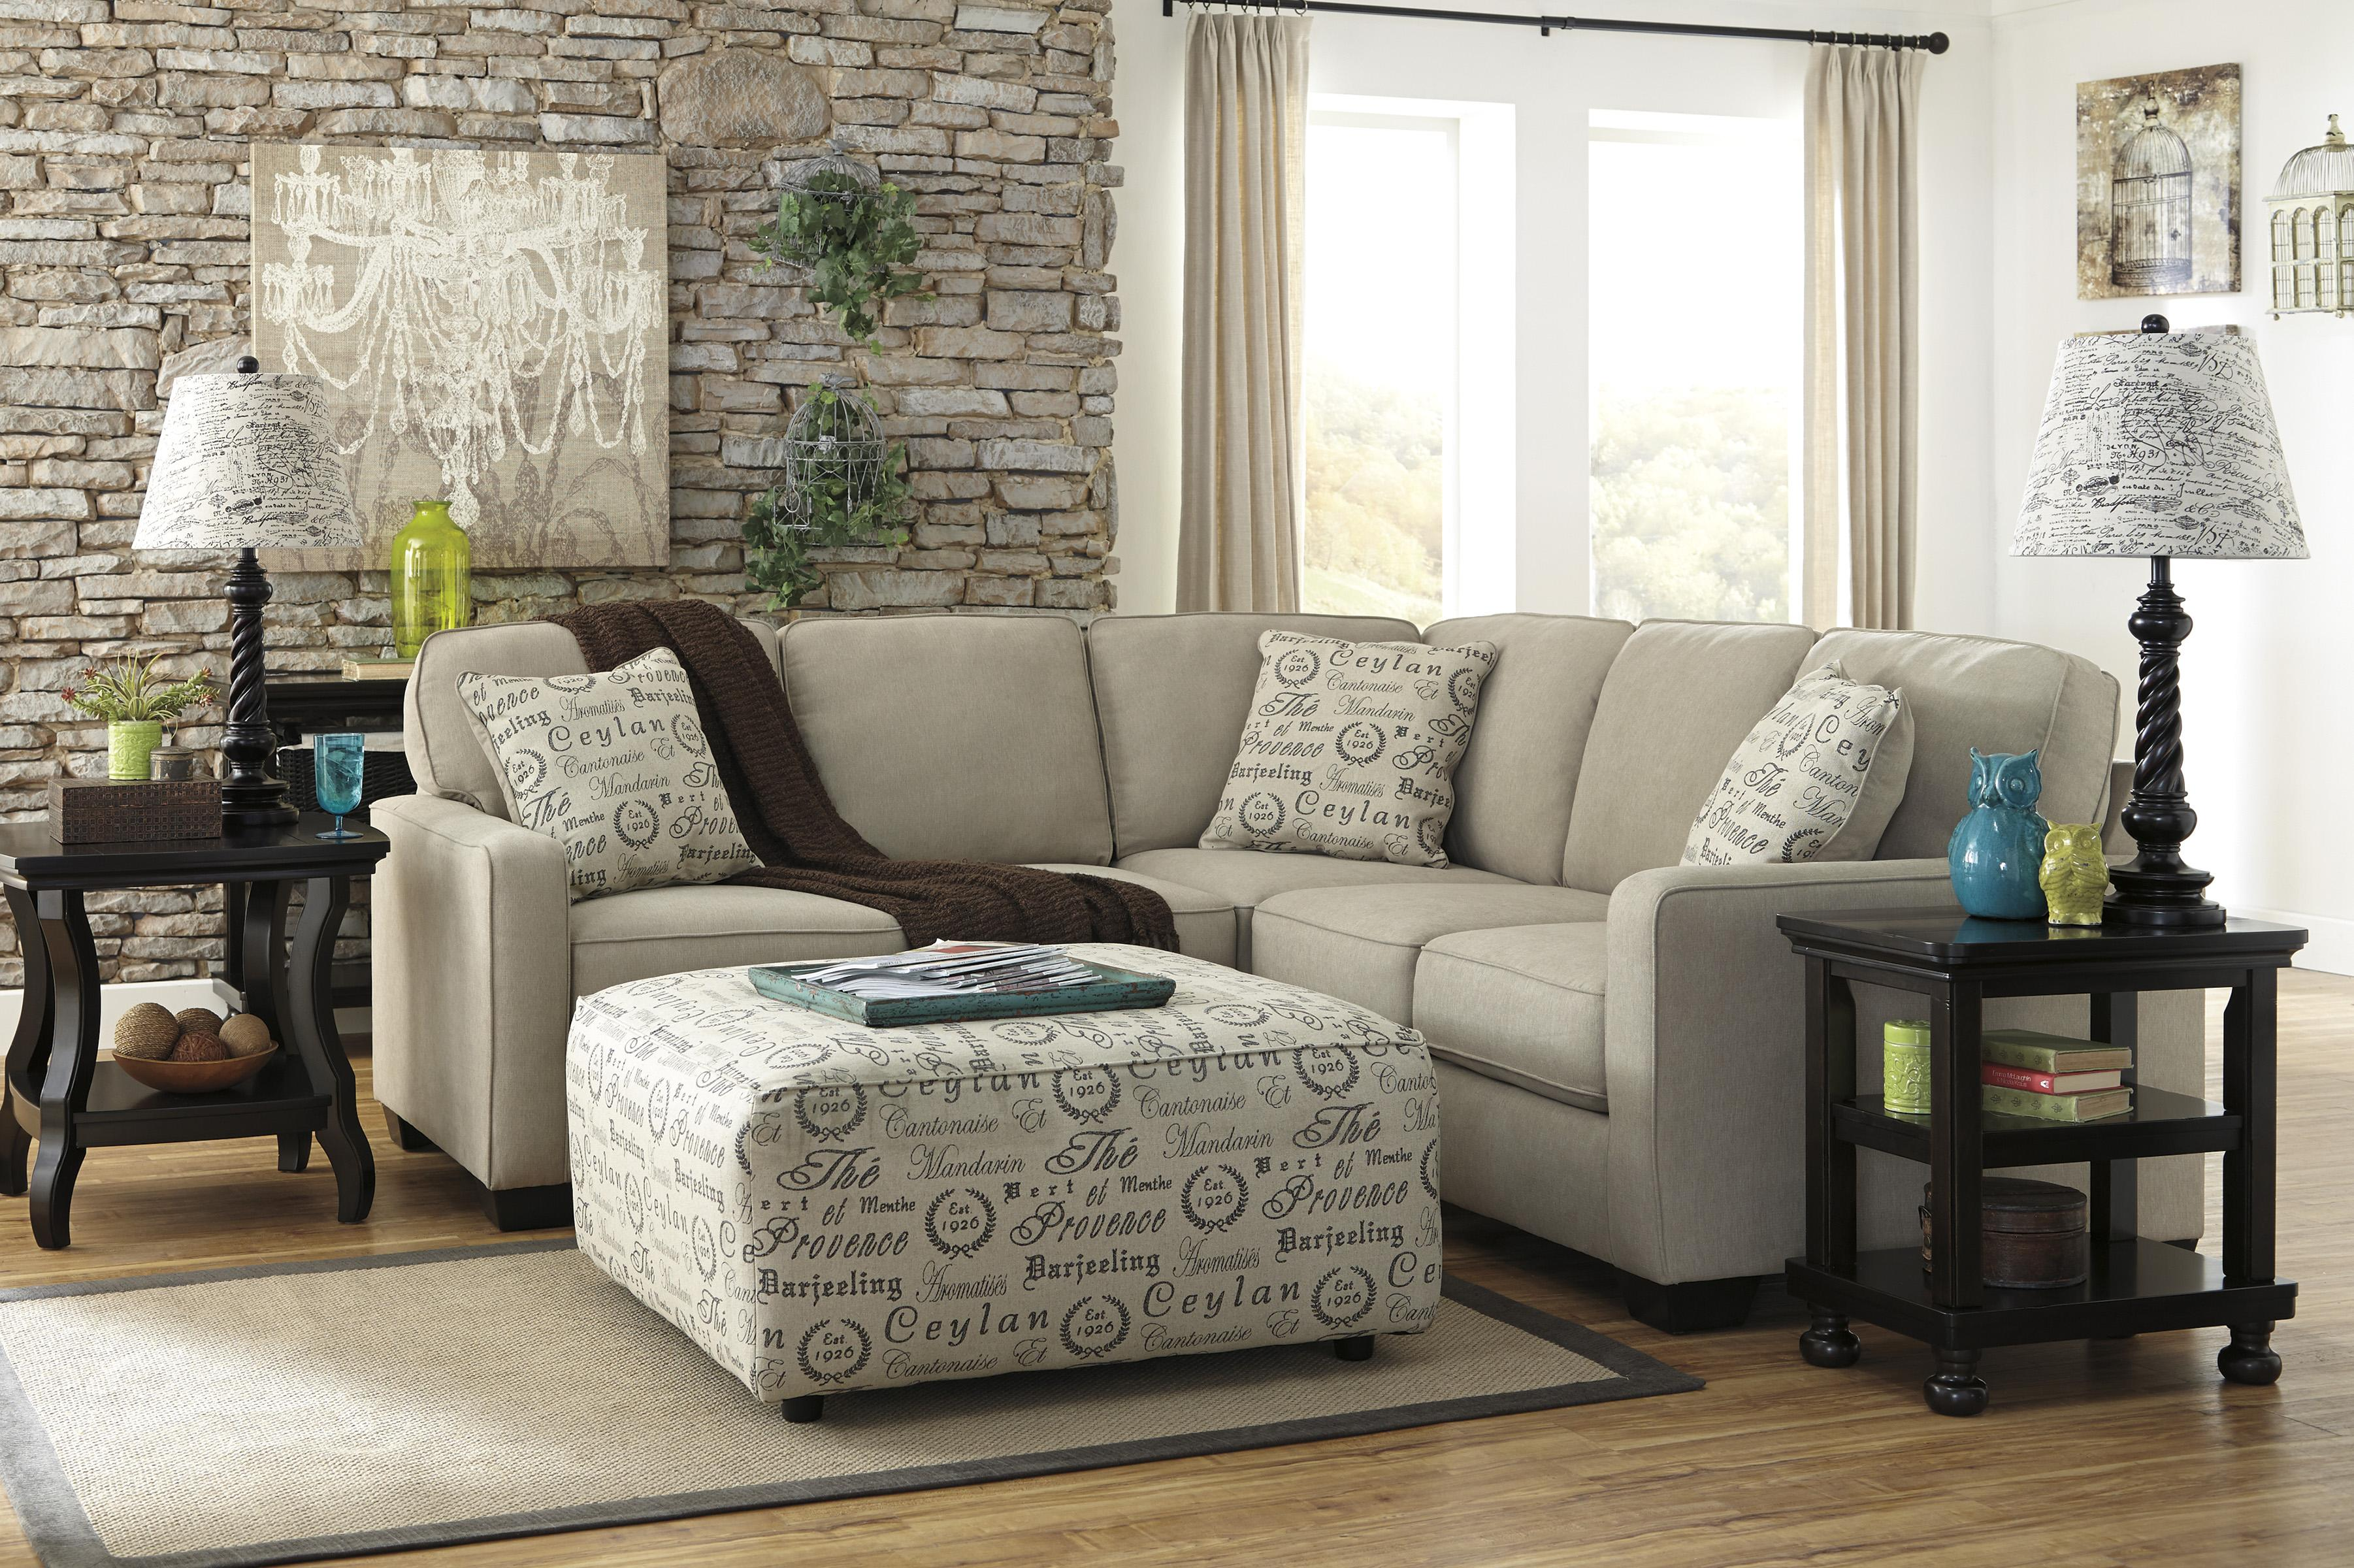 Signature Design By Ashley Alenya Quartz Stationary Living Room Group Value City Furniture